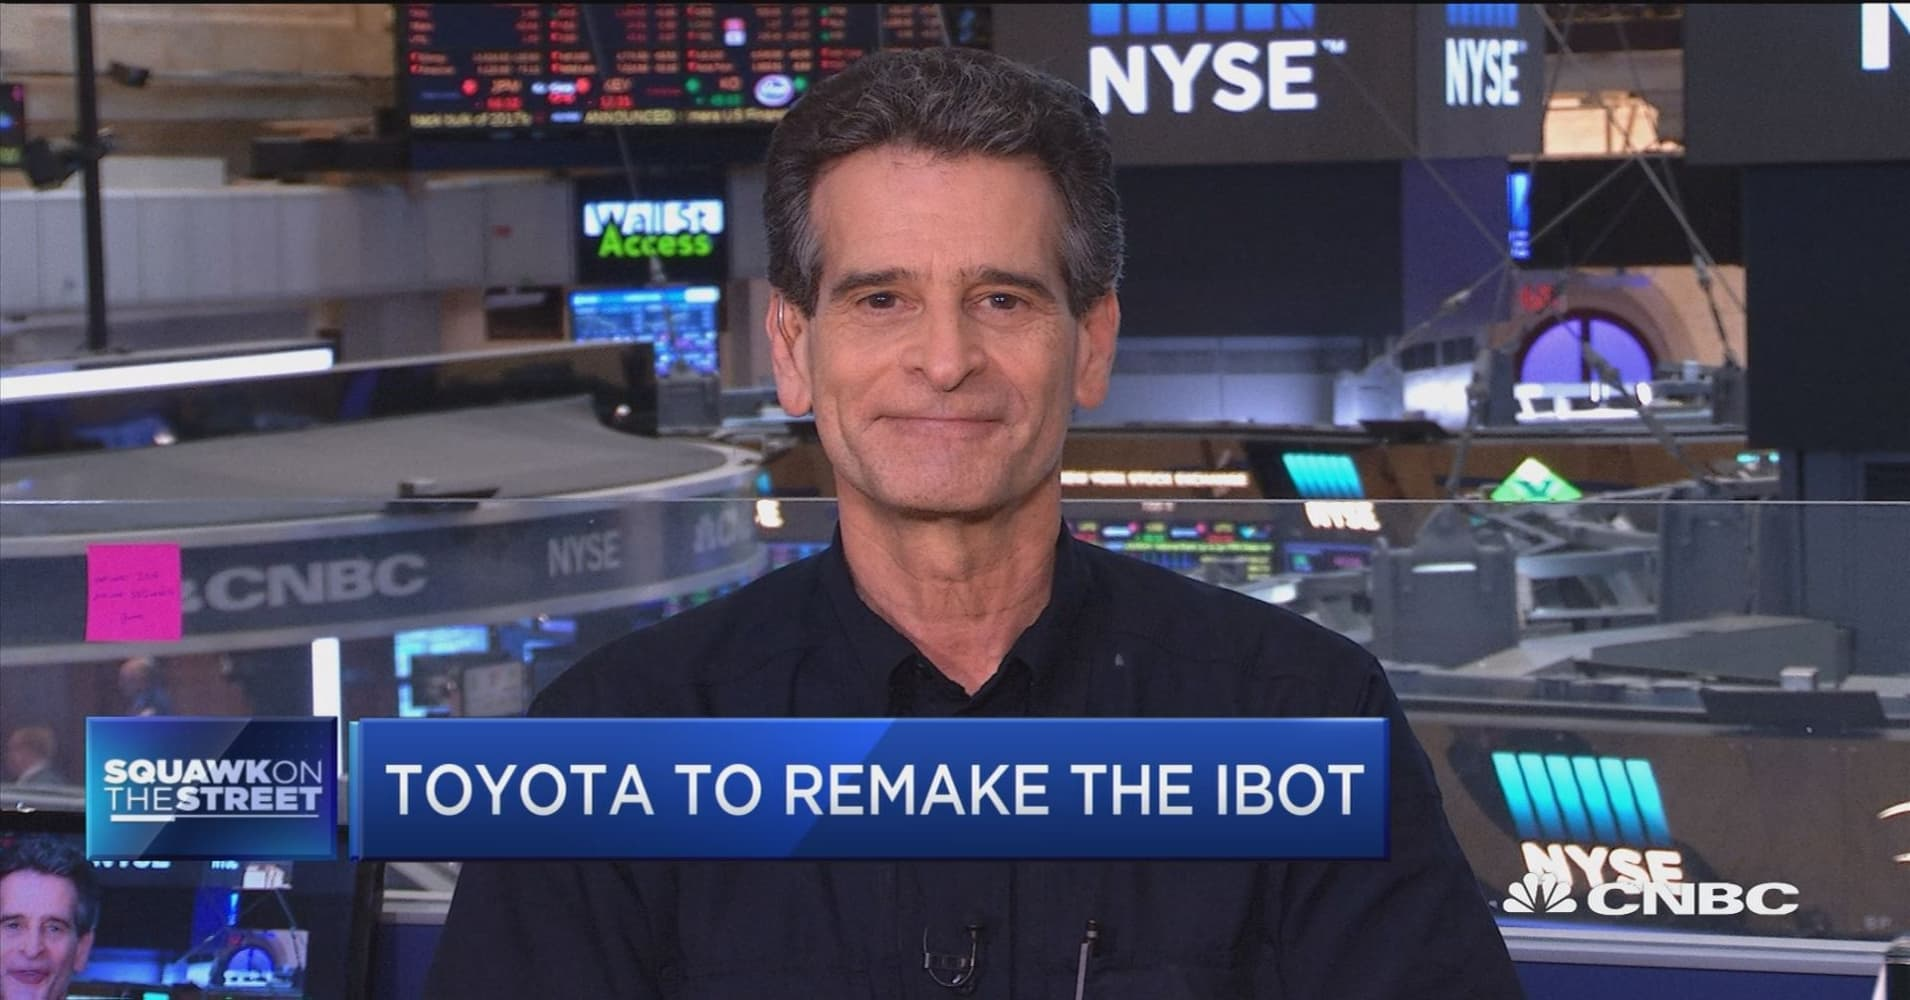 the ibot is back